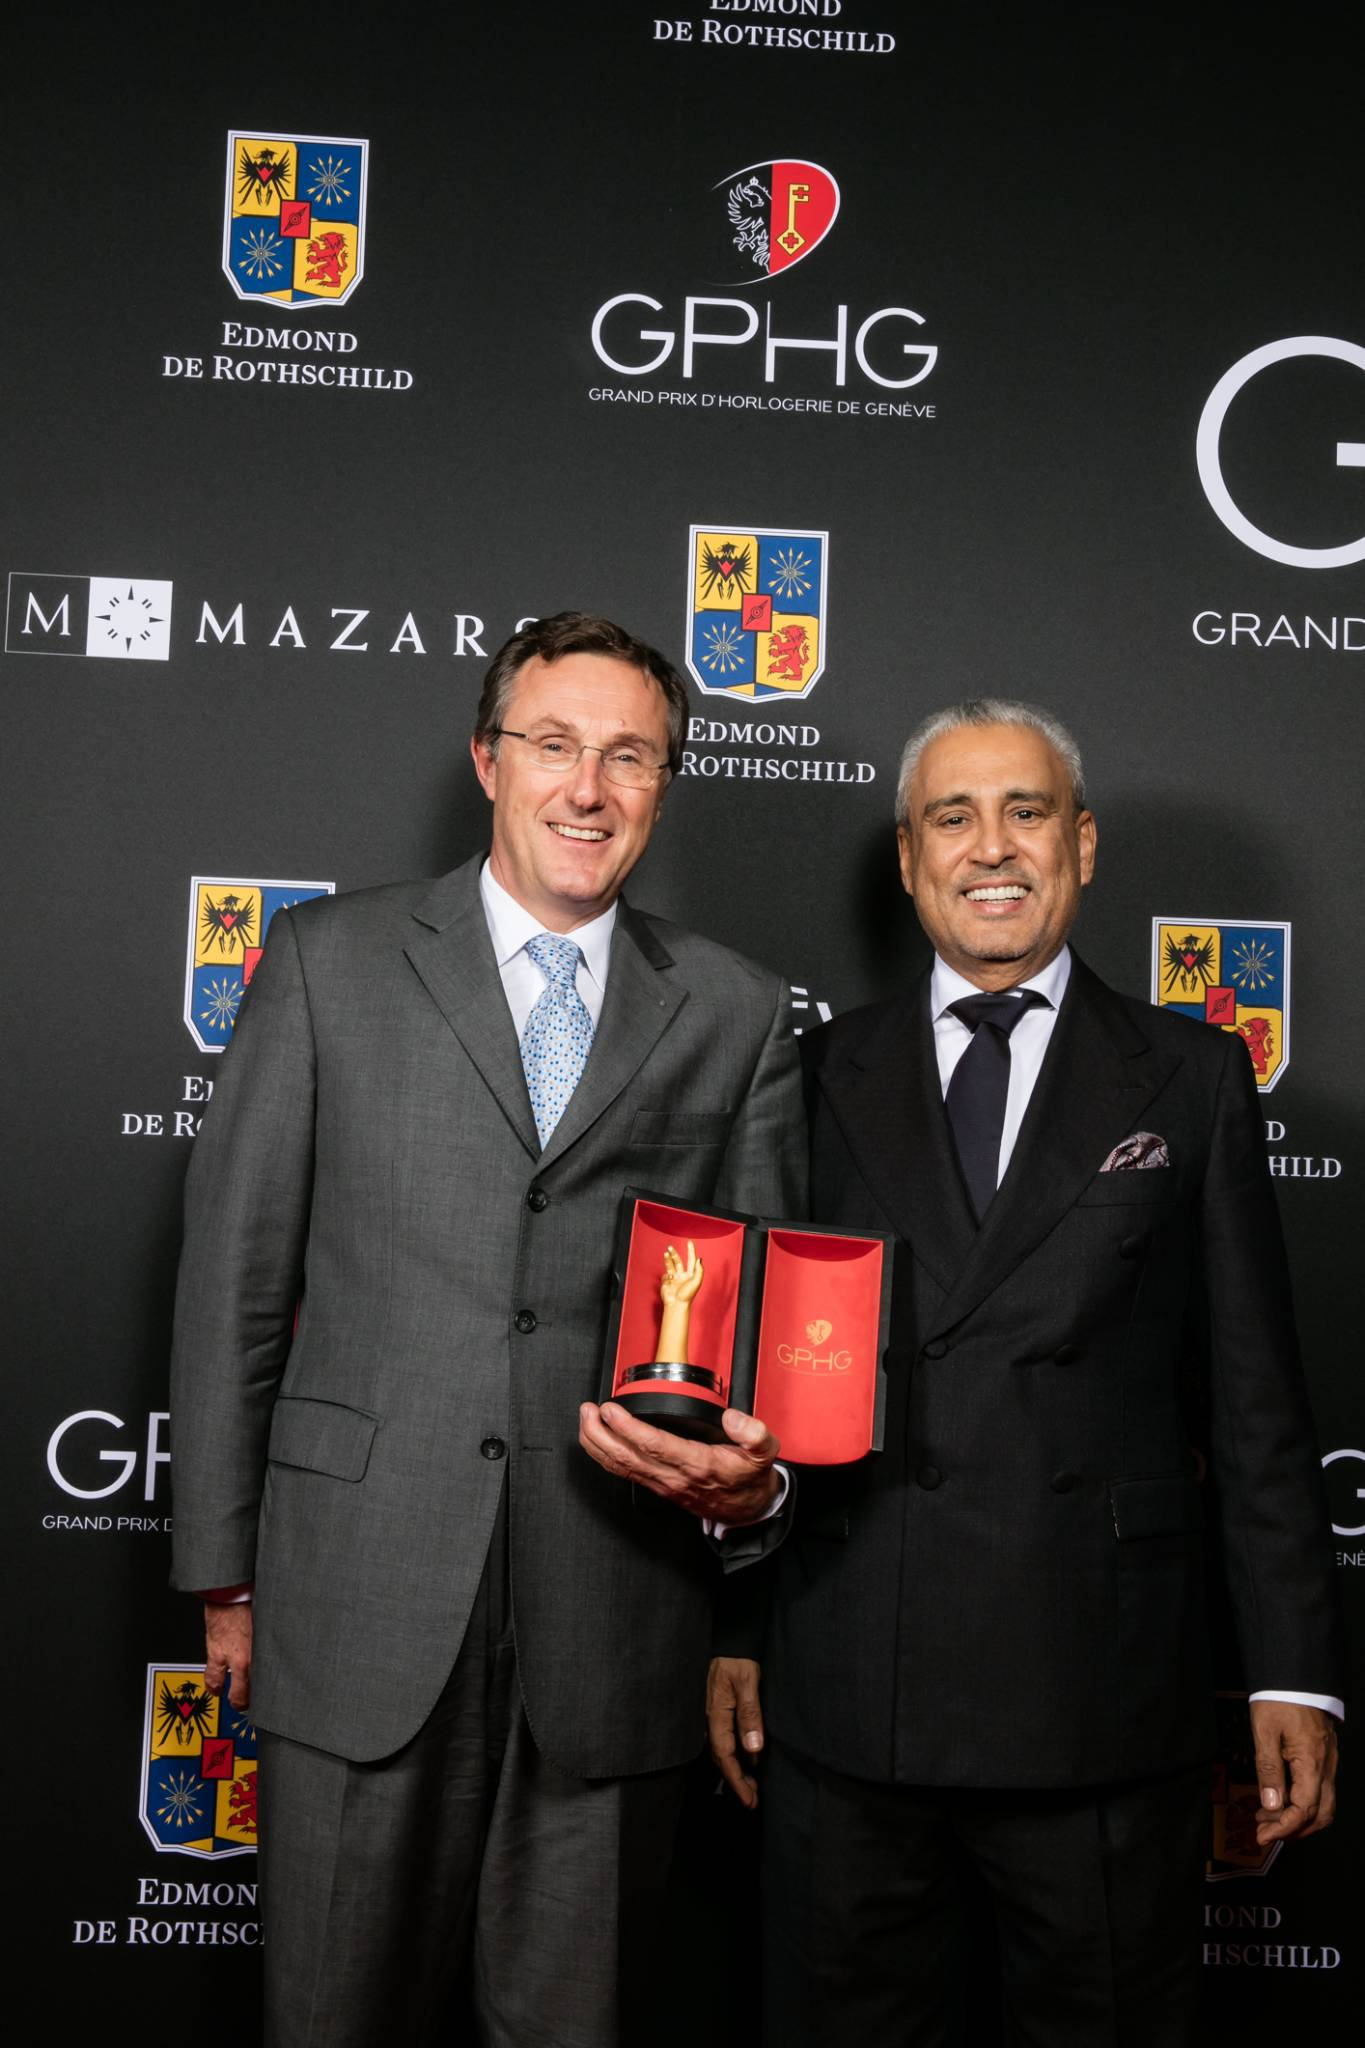 Philippe Peverelli (CEO of Tudor, winner of the Sport Watch Prize 2015) with Abdul Hamied Seddiqi (Vice-chairman of Ahmed Seddiqi & Sons and jury member)